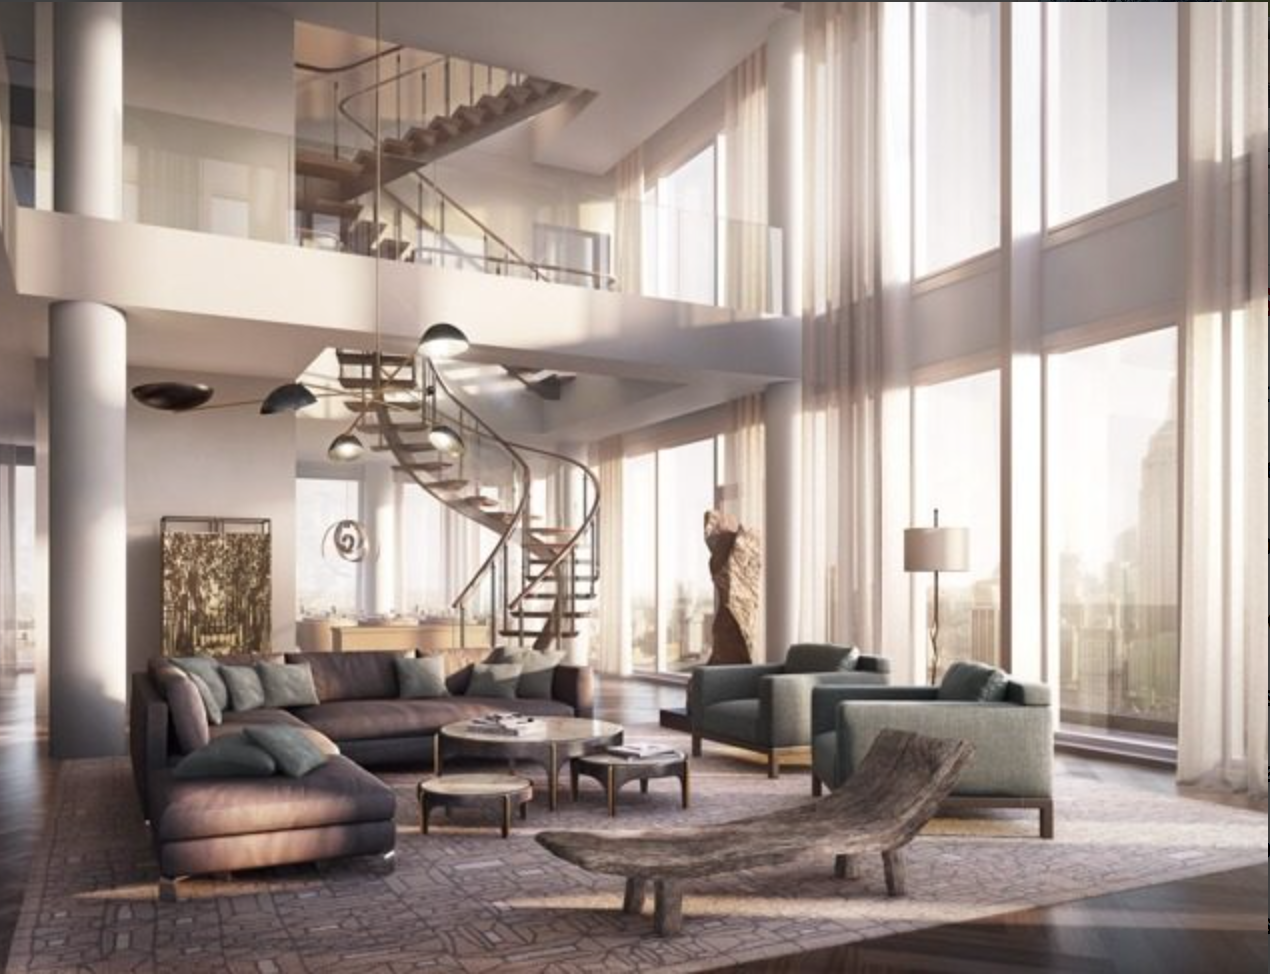 The penthouse boasts a double height Grand Room.